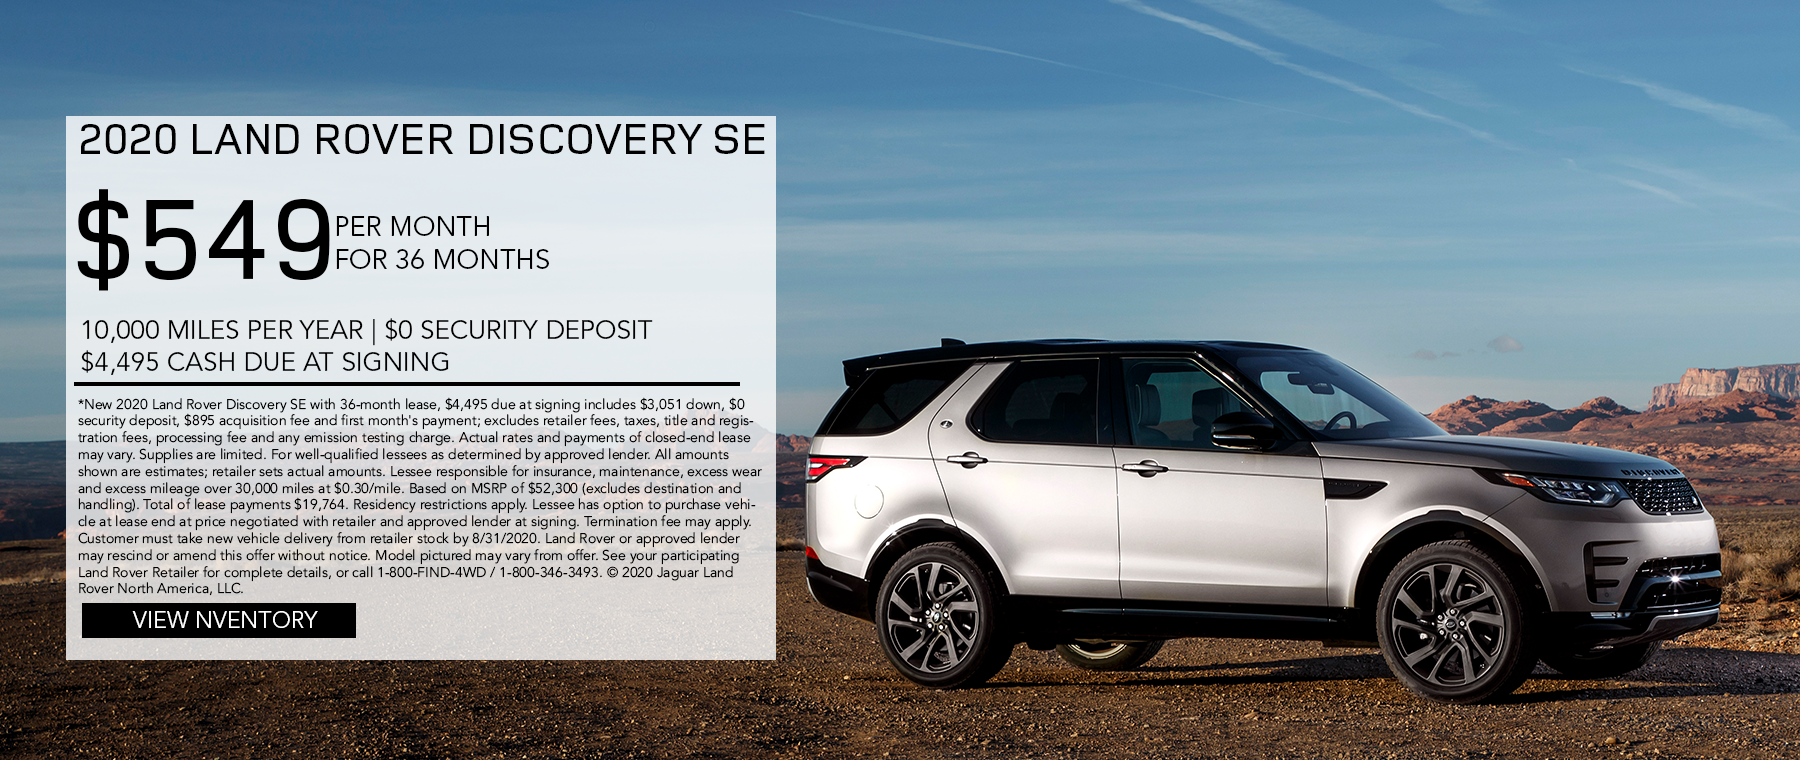 2020 LAND ROVER DISCOVERY SE. $549 PER MONTH. 36 MONTH LEASE TERM. $4,495 CASH DUE AT SIGNING. $0 SECURITY DEPOSIT. 10,000 MILES PER YEAR. EXCLUDES RETAILER FEES, TAXES, TITLE AND REGISTRATION FEES, PROCESSING FEE AND ANY EMISSION TESTING CHARGE. ENDS 8/31/2020.